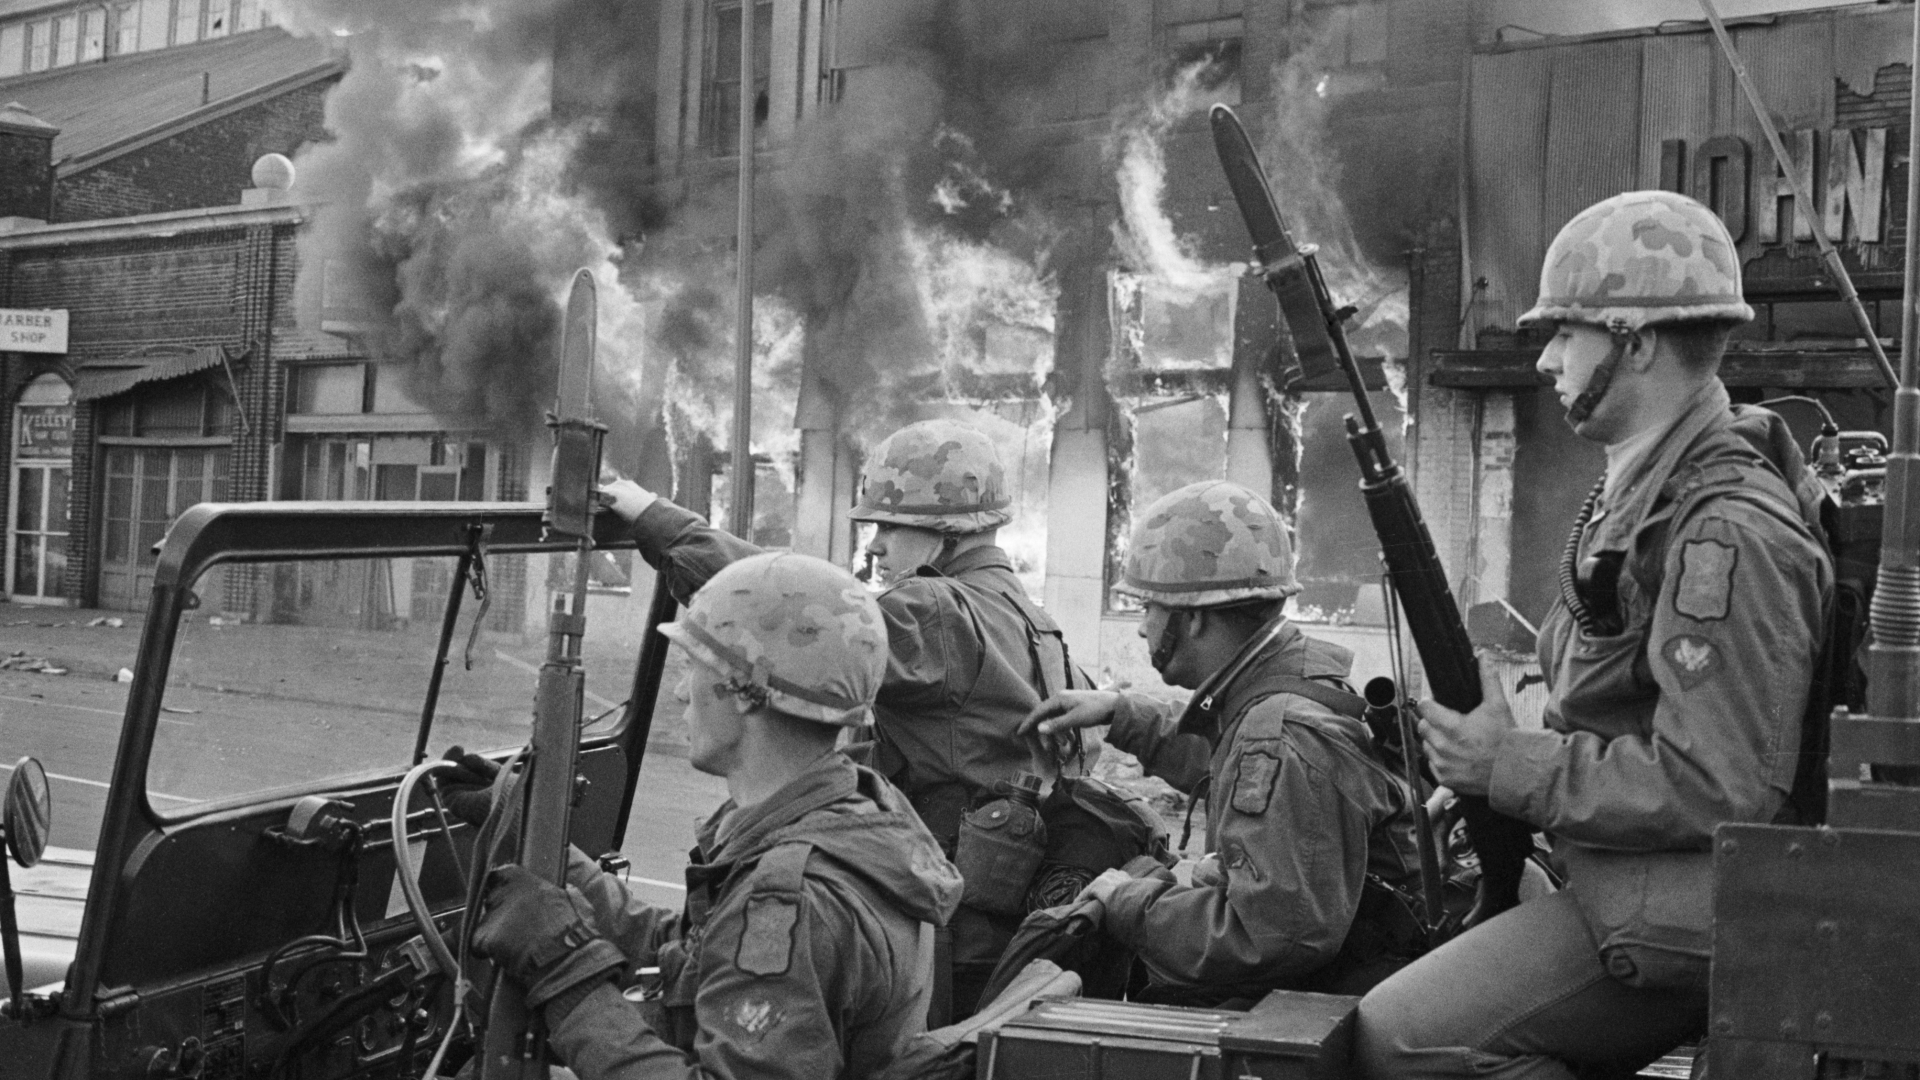 Flames pouring out from a building behind a jeep full of National Guardsmen patrolling the nation's capital as violence erupted after the assassination of Martin Luther King, Jr. (Credit: UPI staff photographer Darryl Heikes)